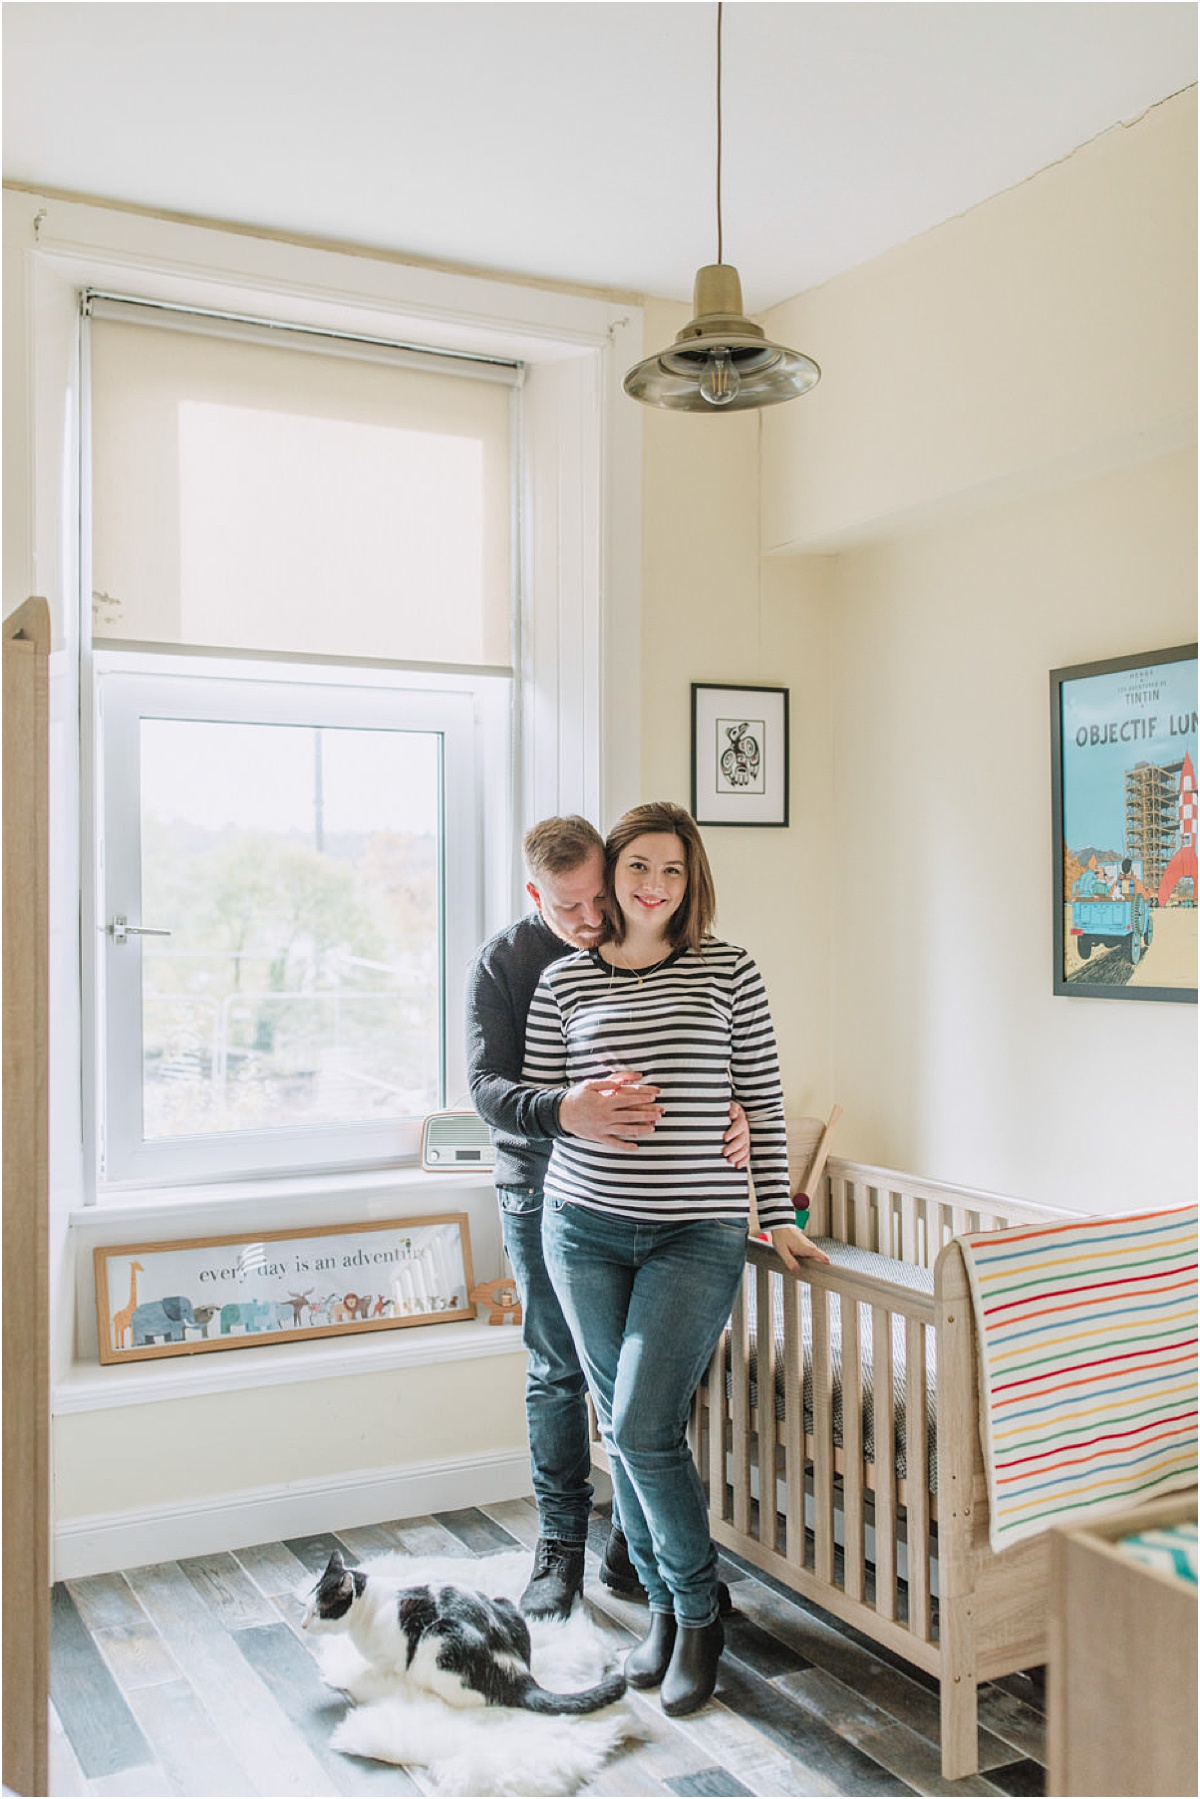 Maternity photographers glasgow,The Gibsons,The Gibsons Photography,maternity and baby photography,maternity session glasgow,maternity shoot glasgow,maternity shoot portraits,